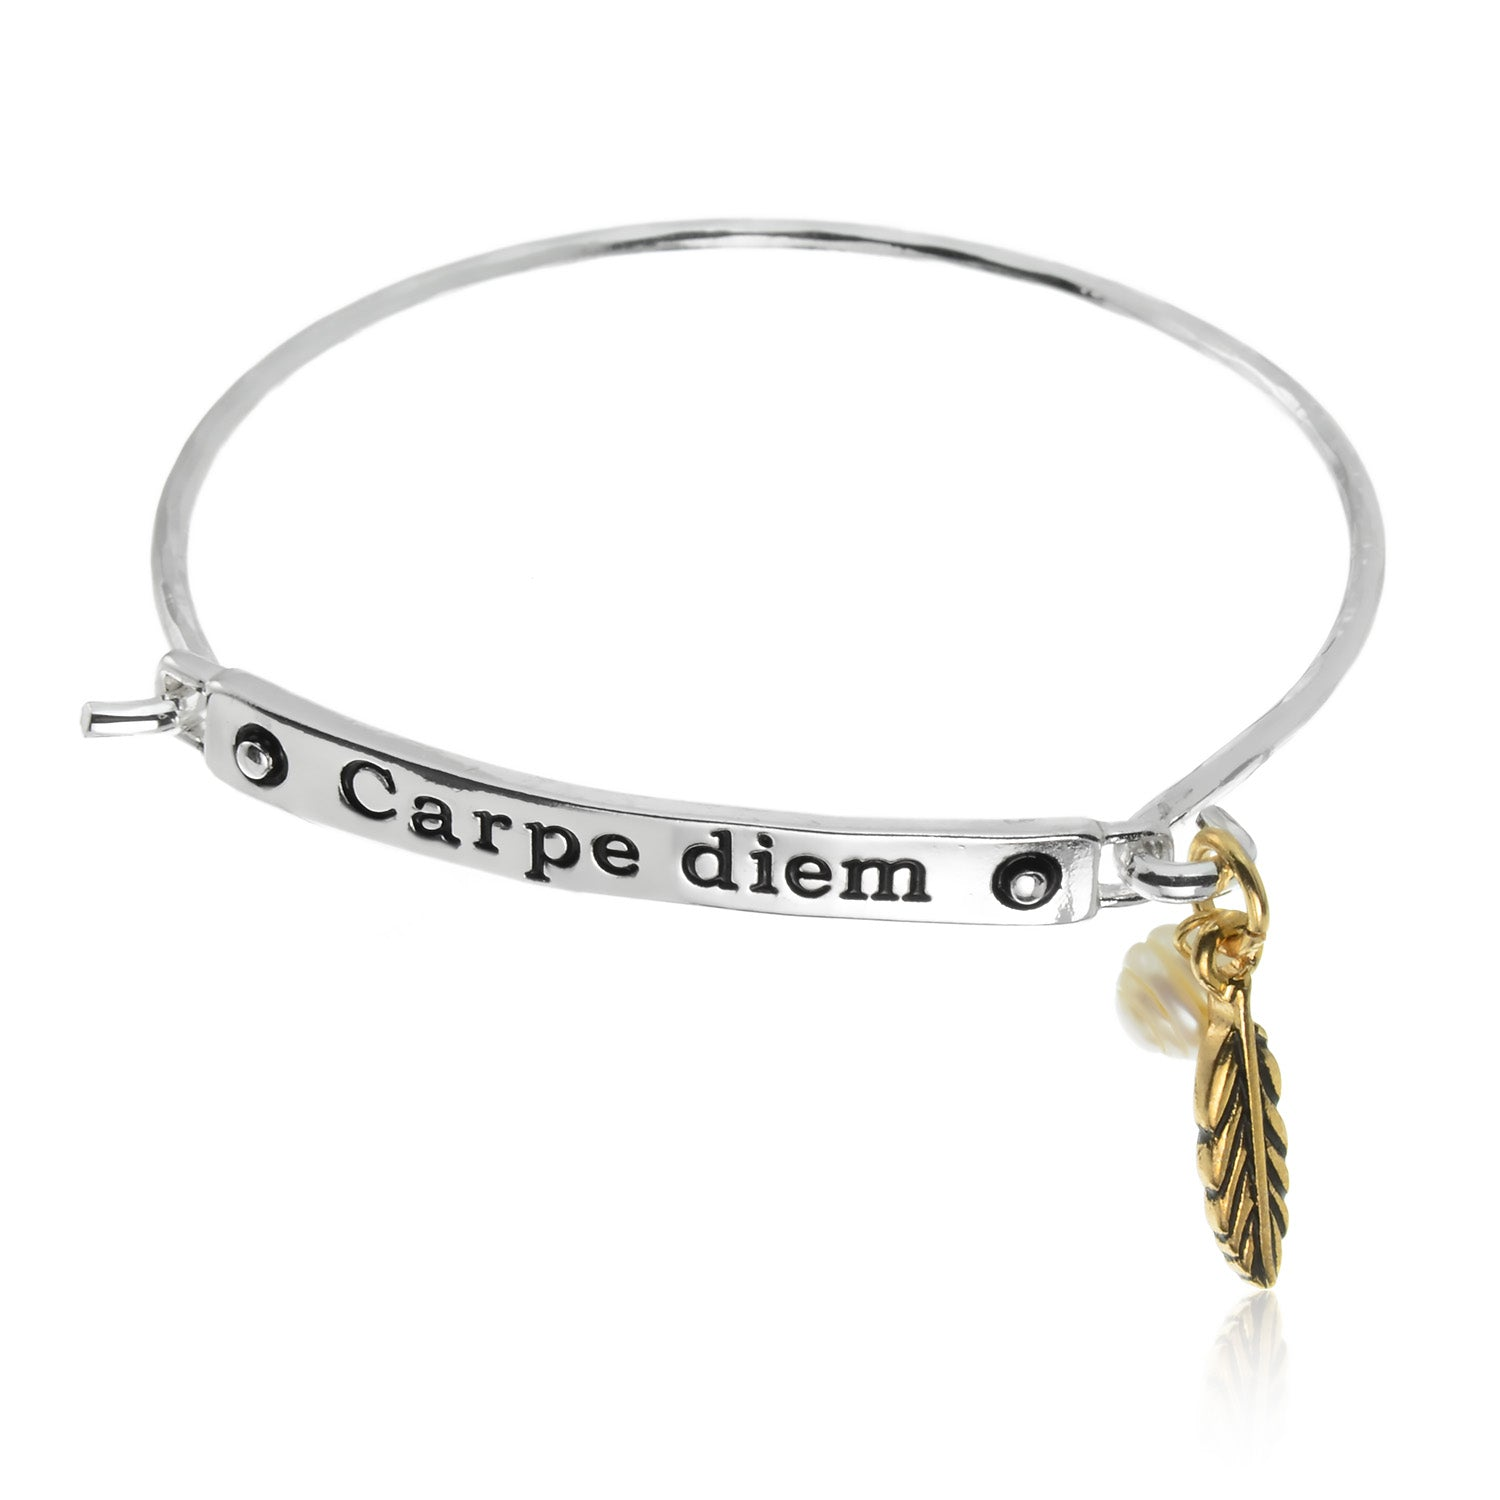 your charm gifts best message hero bangles in from hot teamer bracelets leather own be engraving bracelet inspirational man with english jewelry letters for item lot fashion inspiring